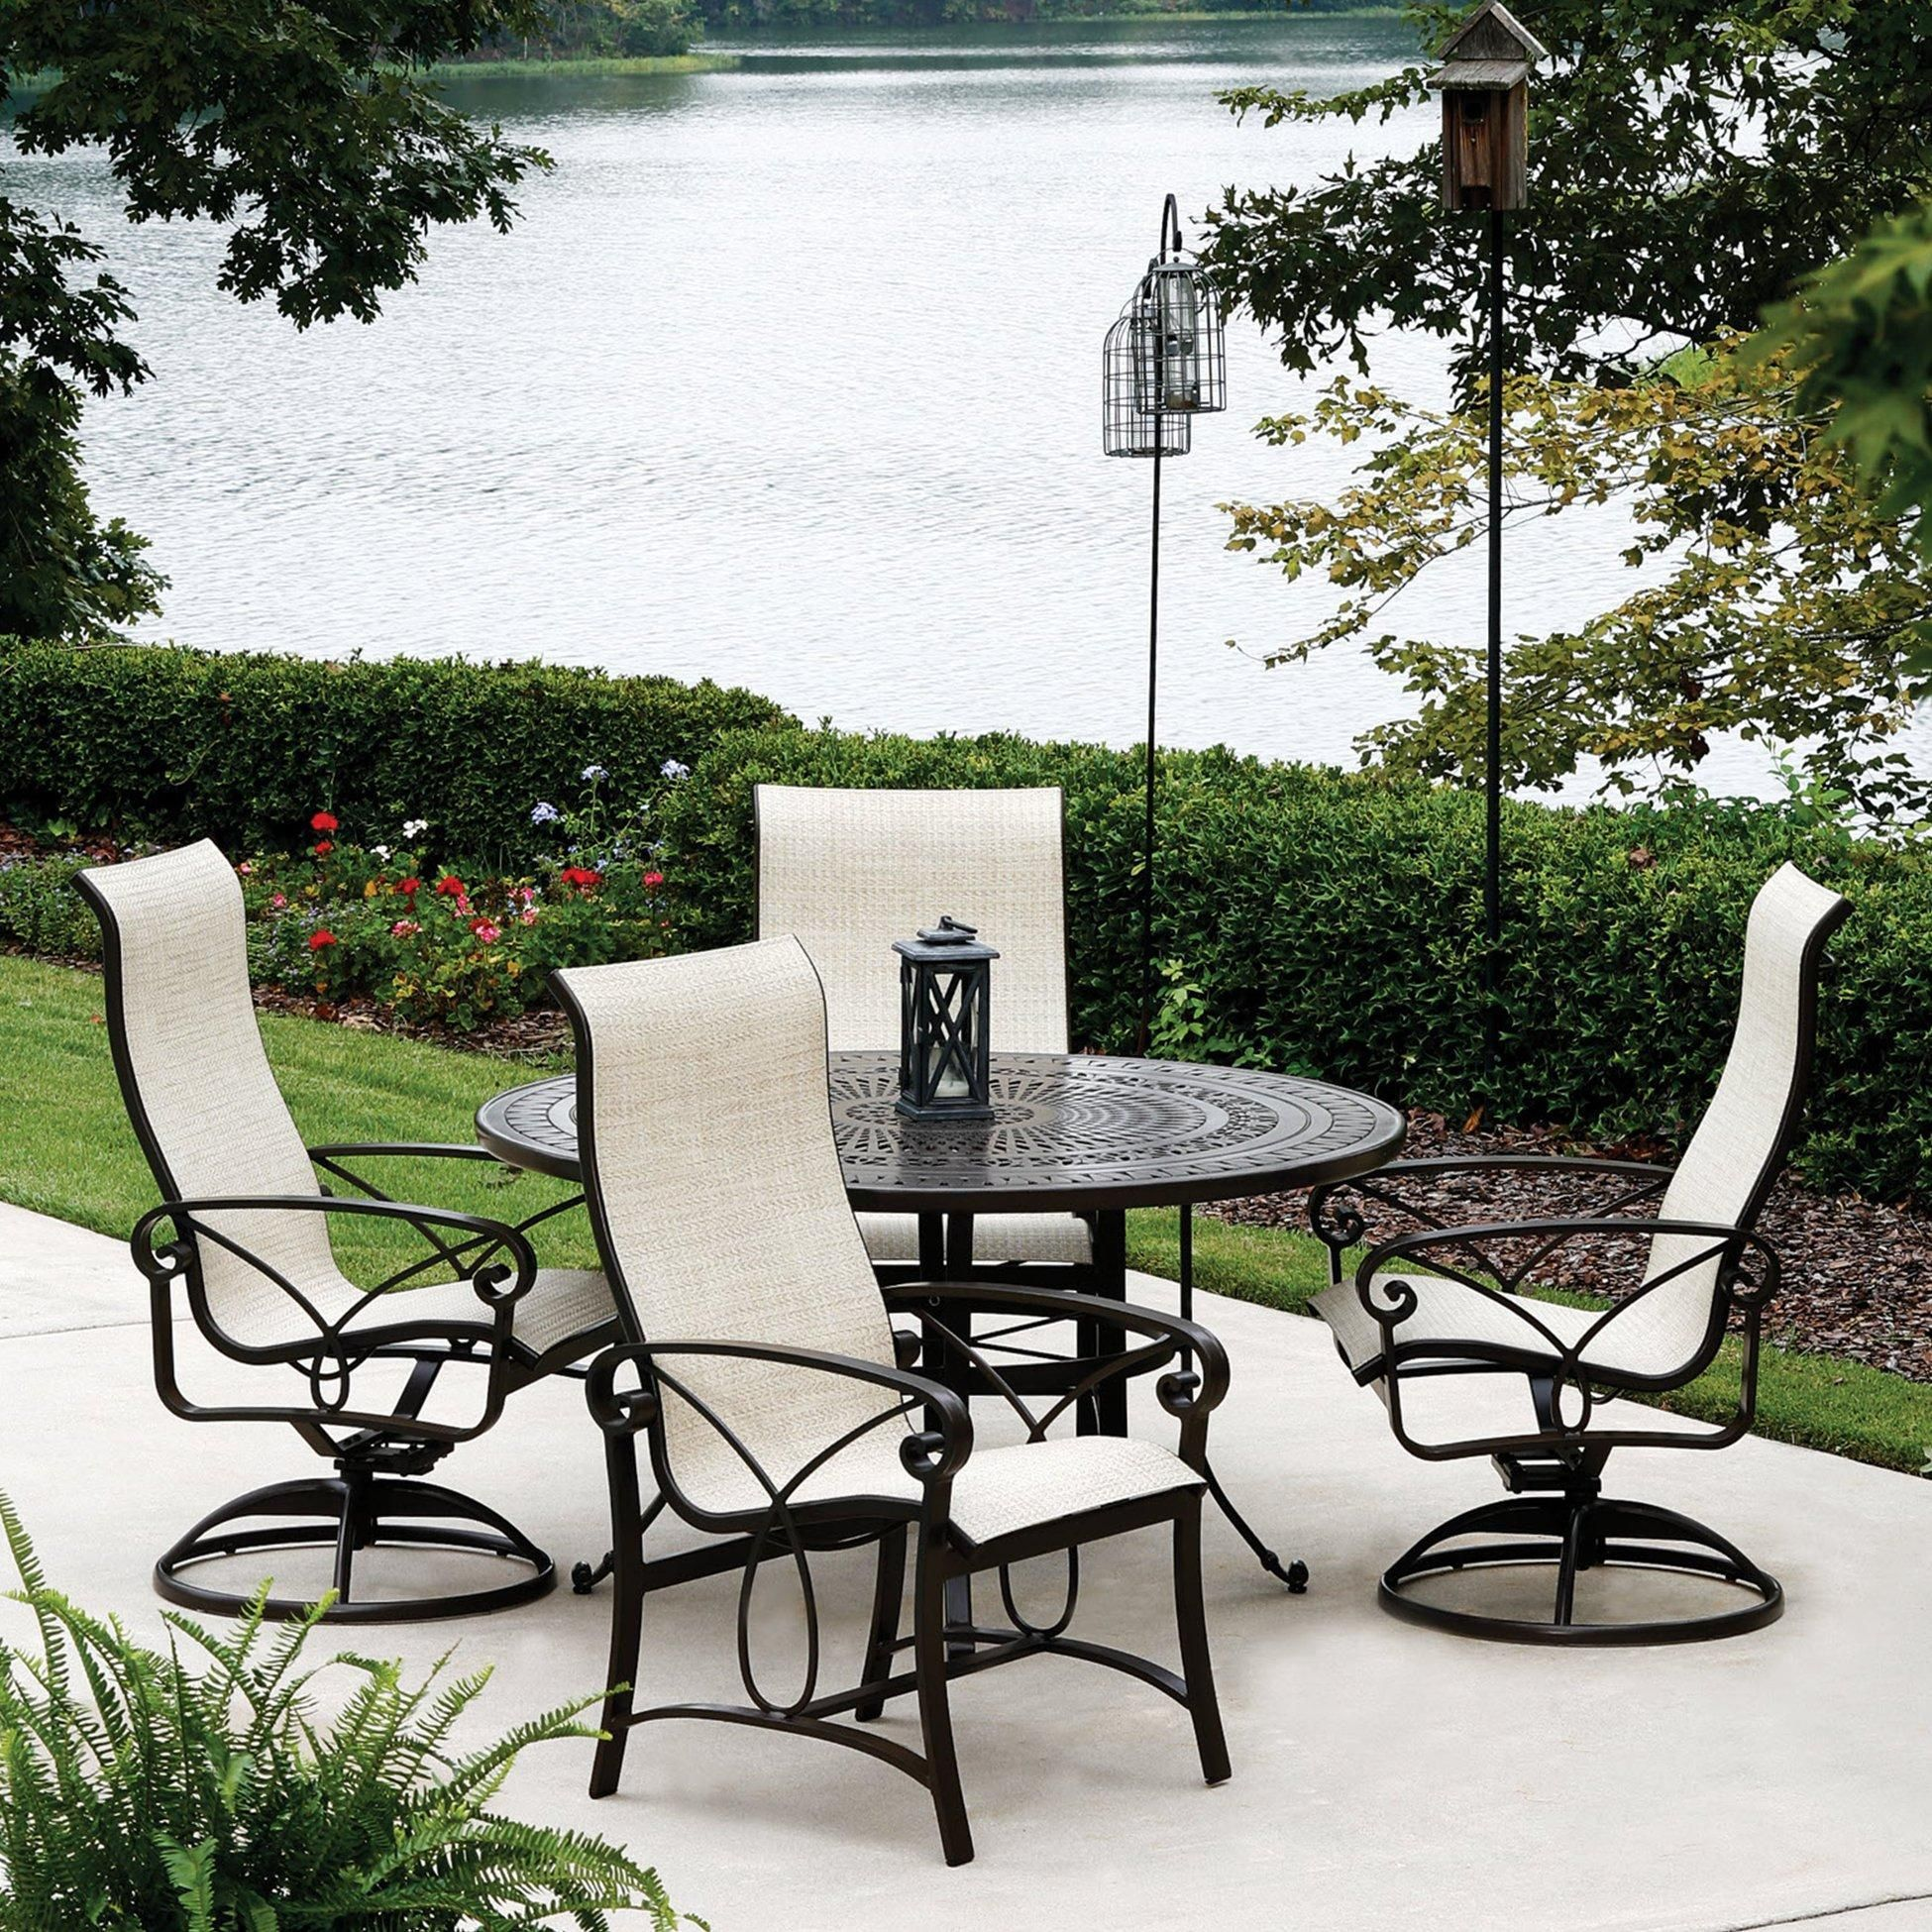 Best Furniture Stores In Northern Va Pin By Annora On Home Interior Furniture Outdoor Furniture